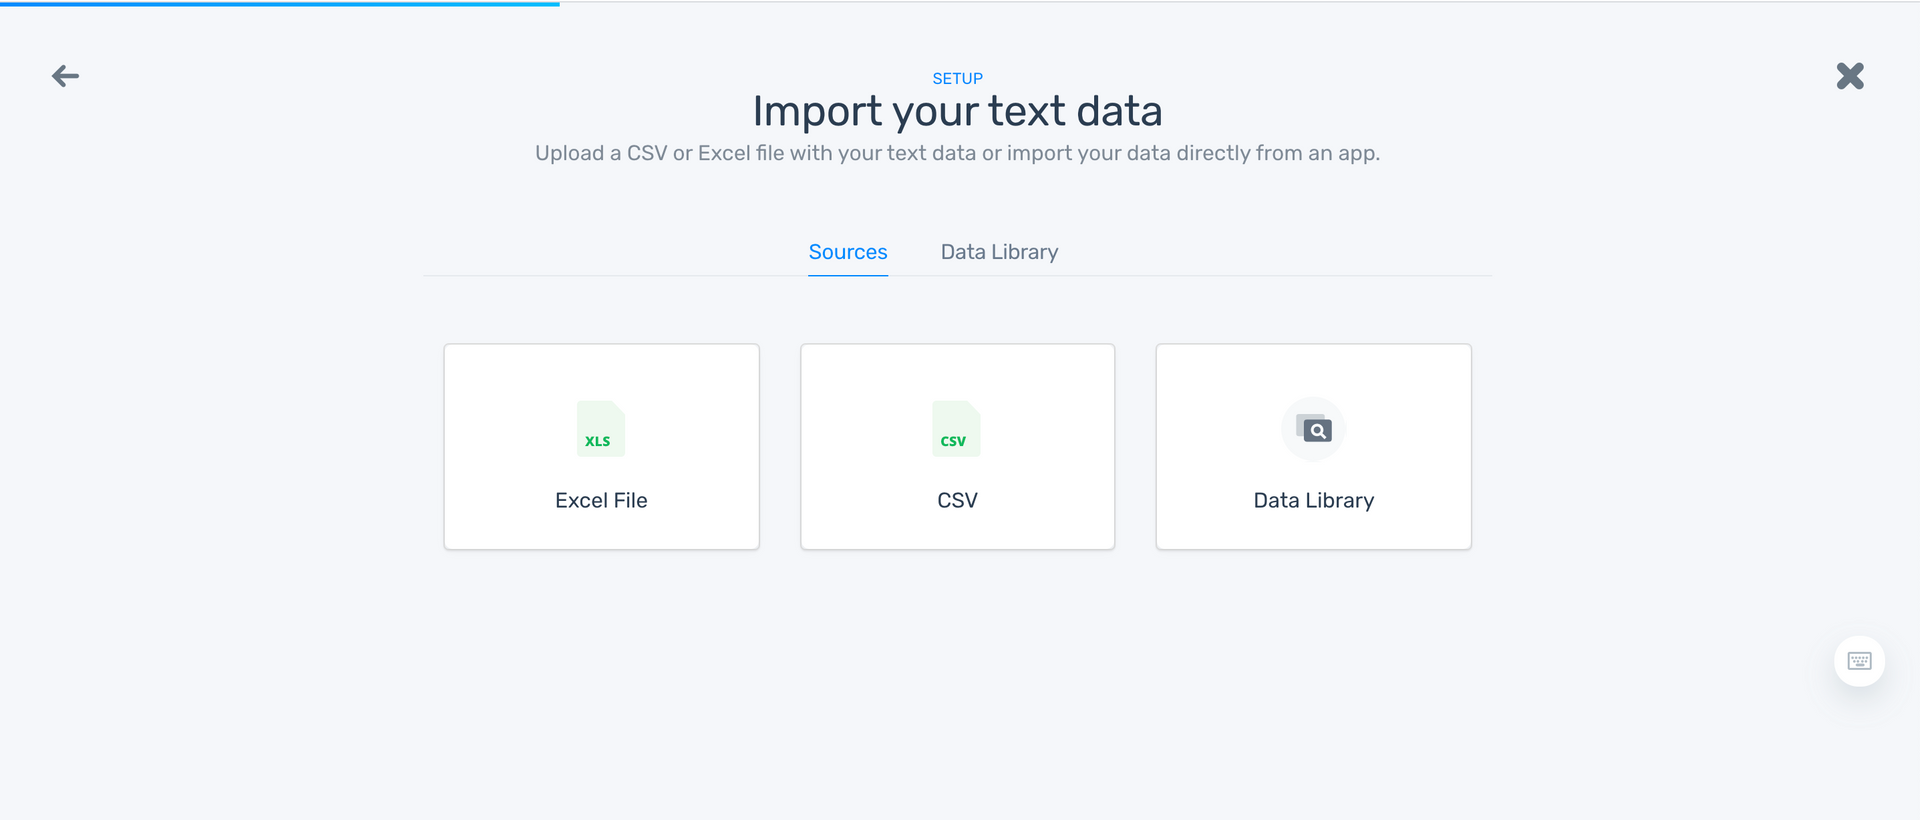 Step to uploda data: as an excel file or CSV